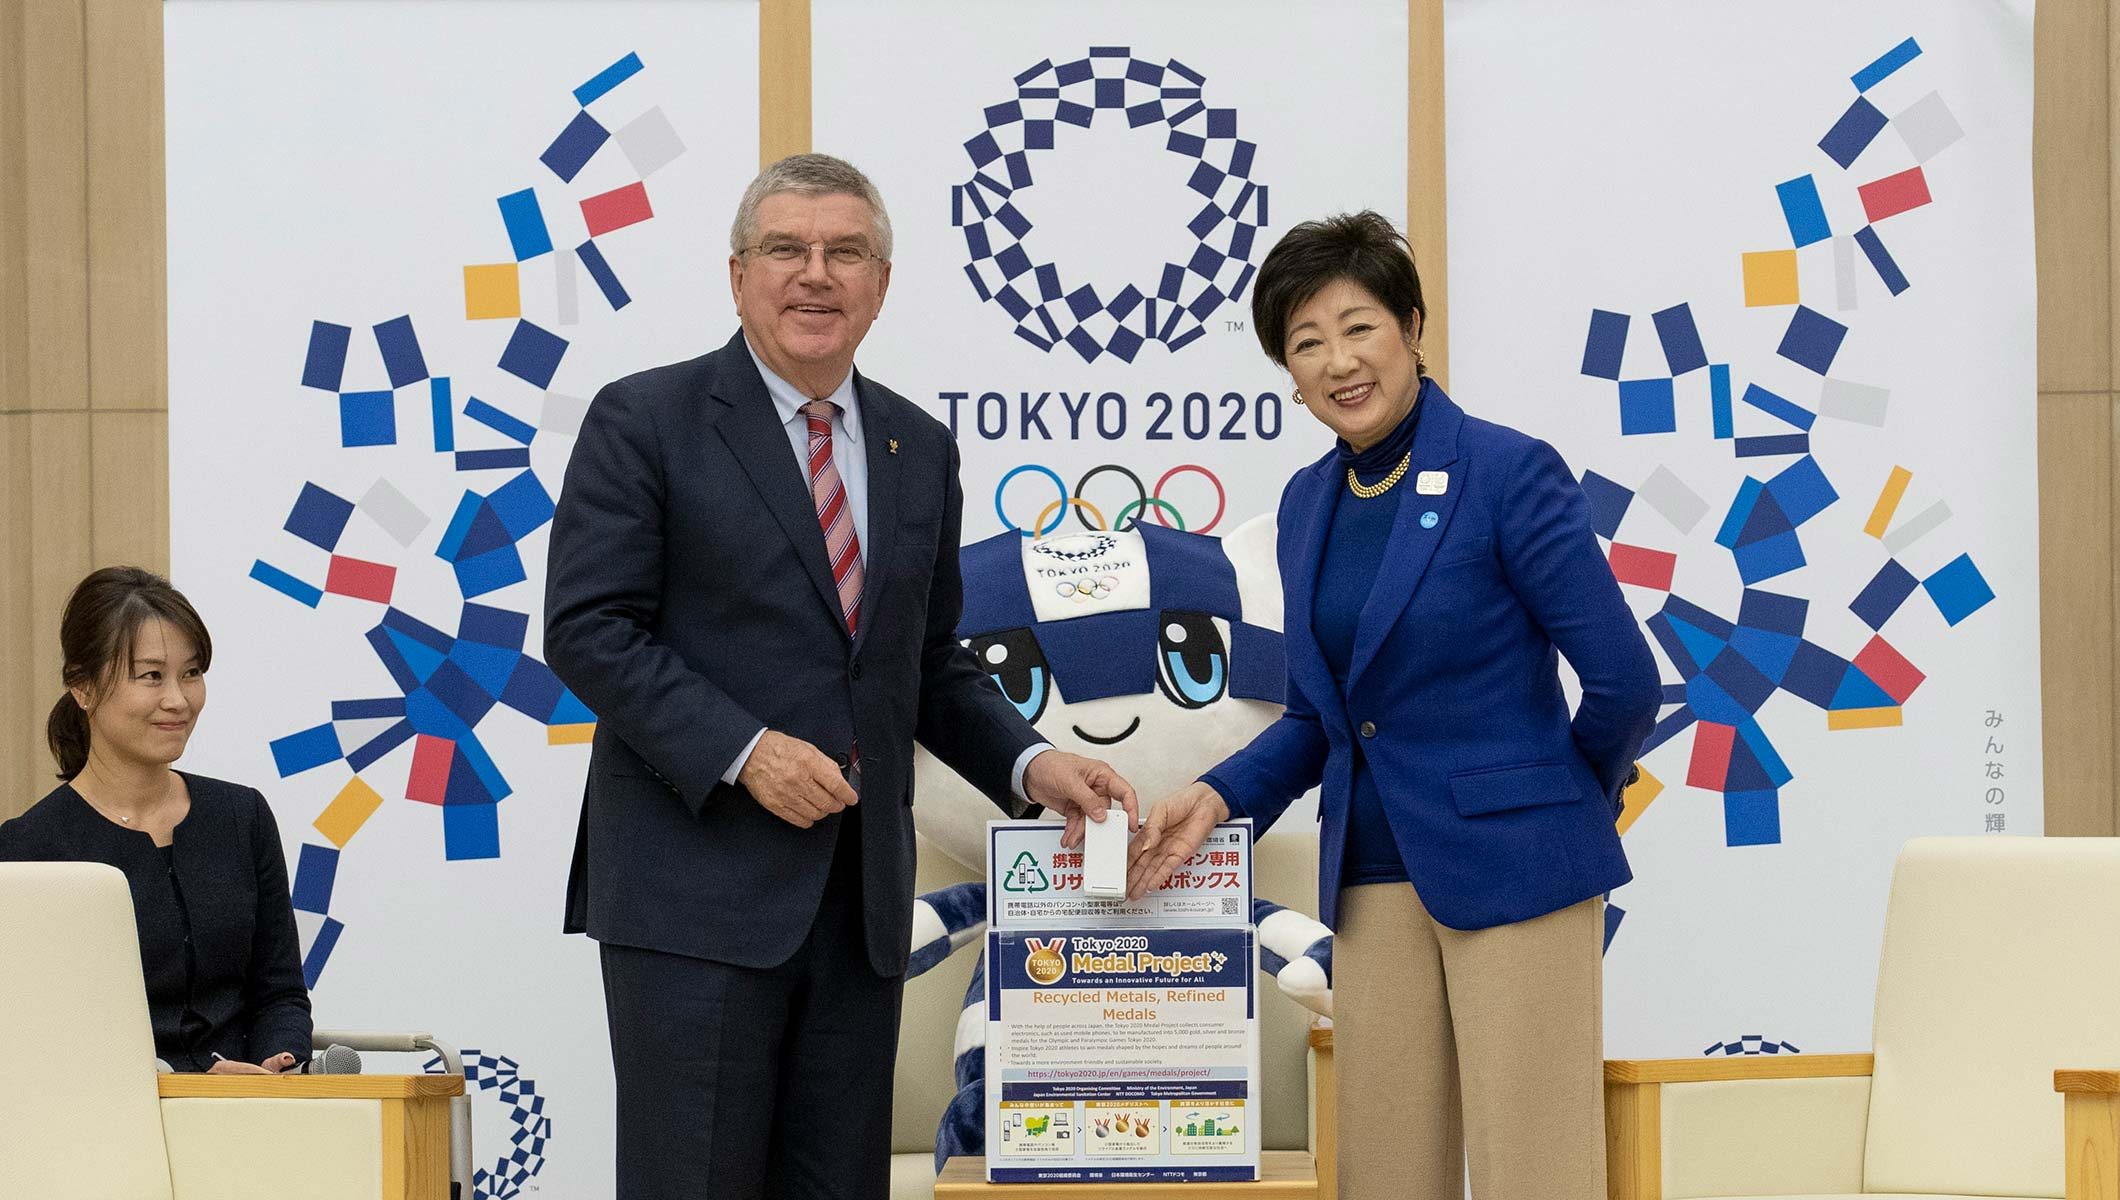 GETTING A MEDAL FOR RECYCLING: HOW OLD DEVICES ARE TURNED INTO OLYMPIC MEDALS FOR TOKYO 2020